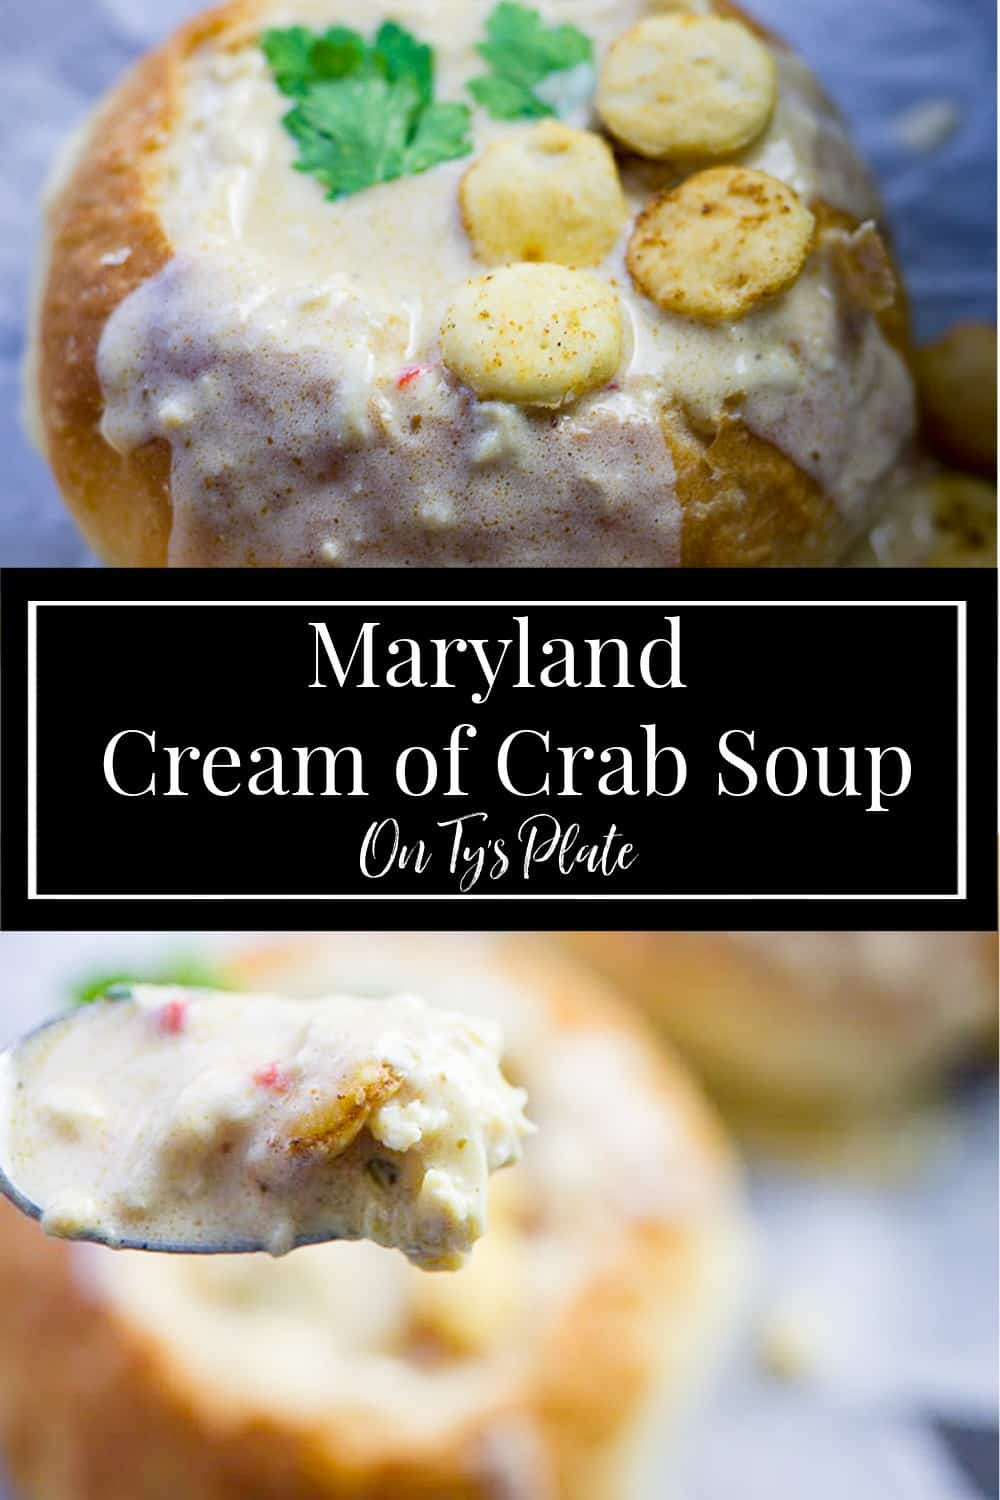 Maryland Cream of Crab Soup